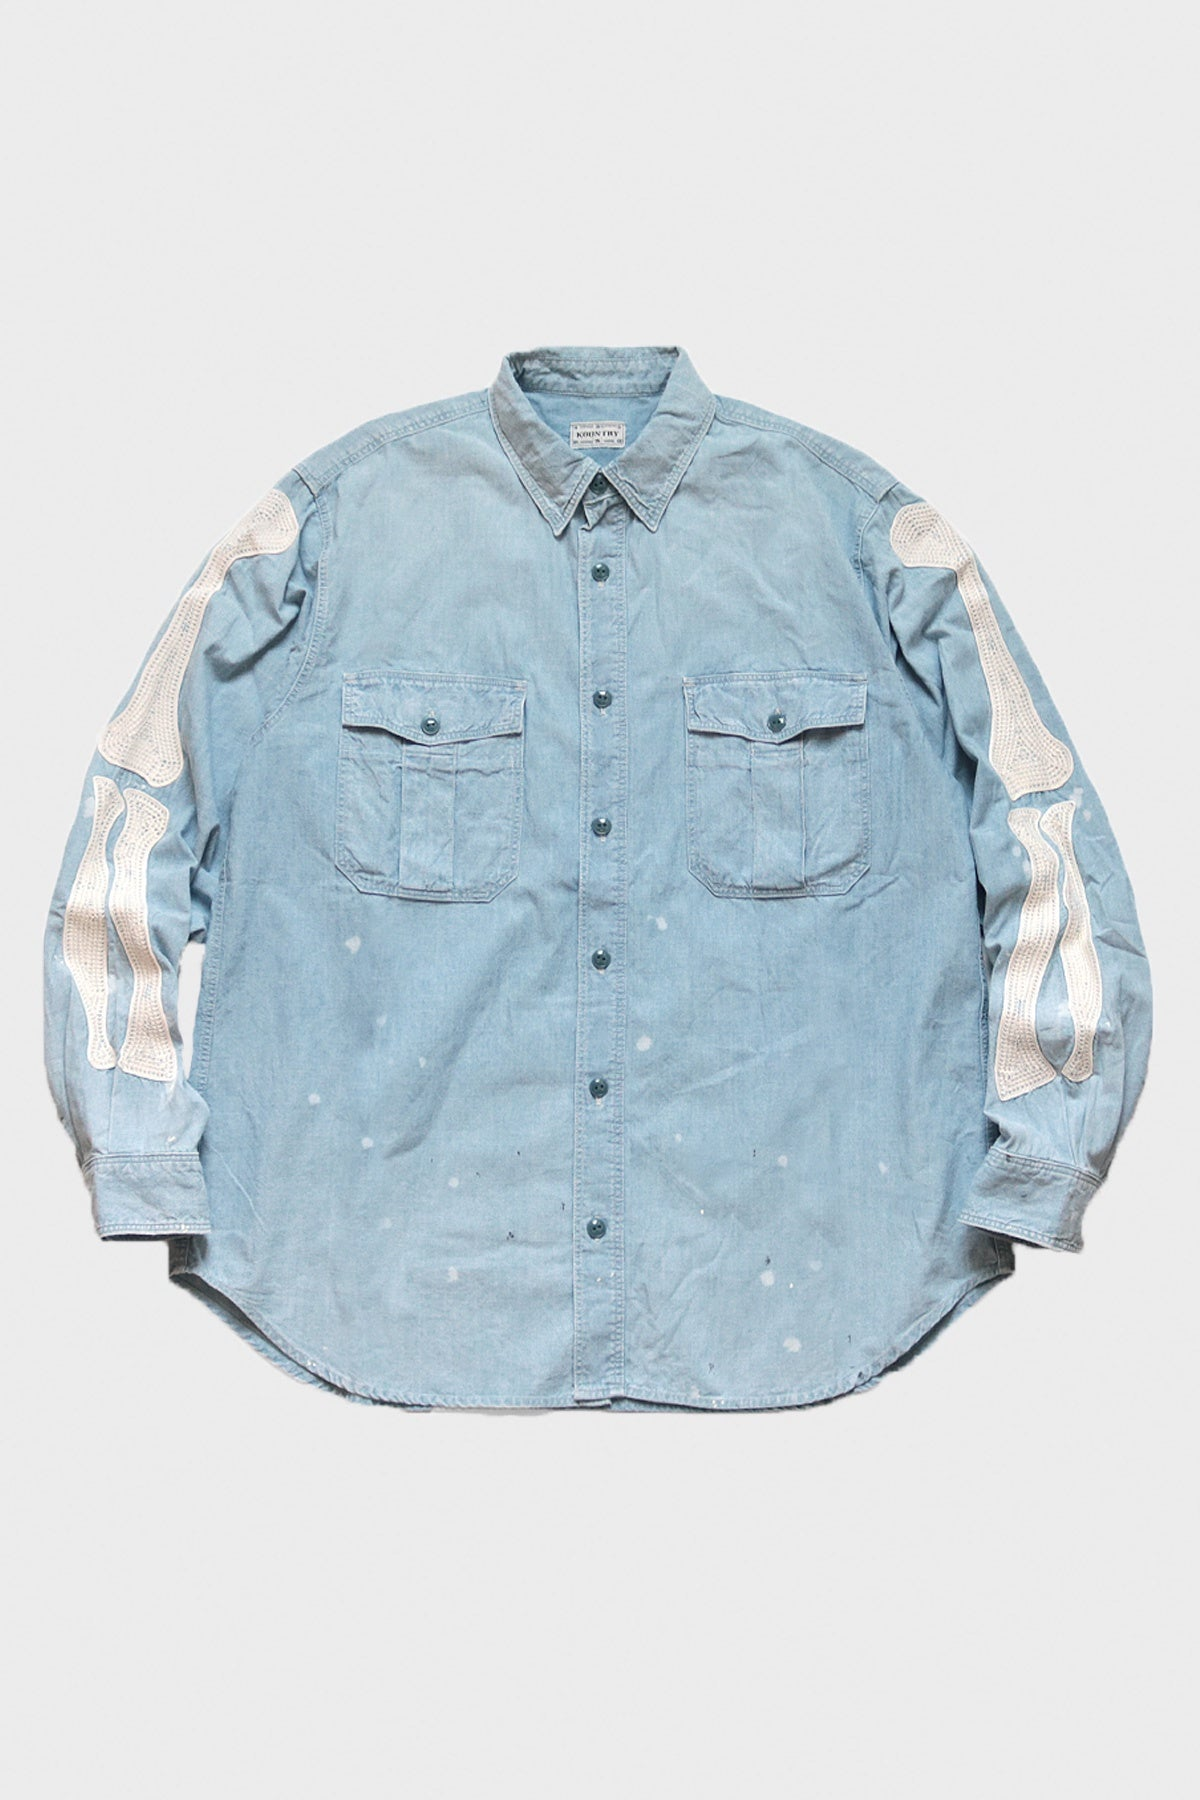 Kapital - Chambray Work Shirt (BONE Embroidery) - Sax - Canoe Club